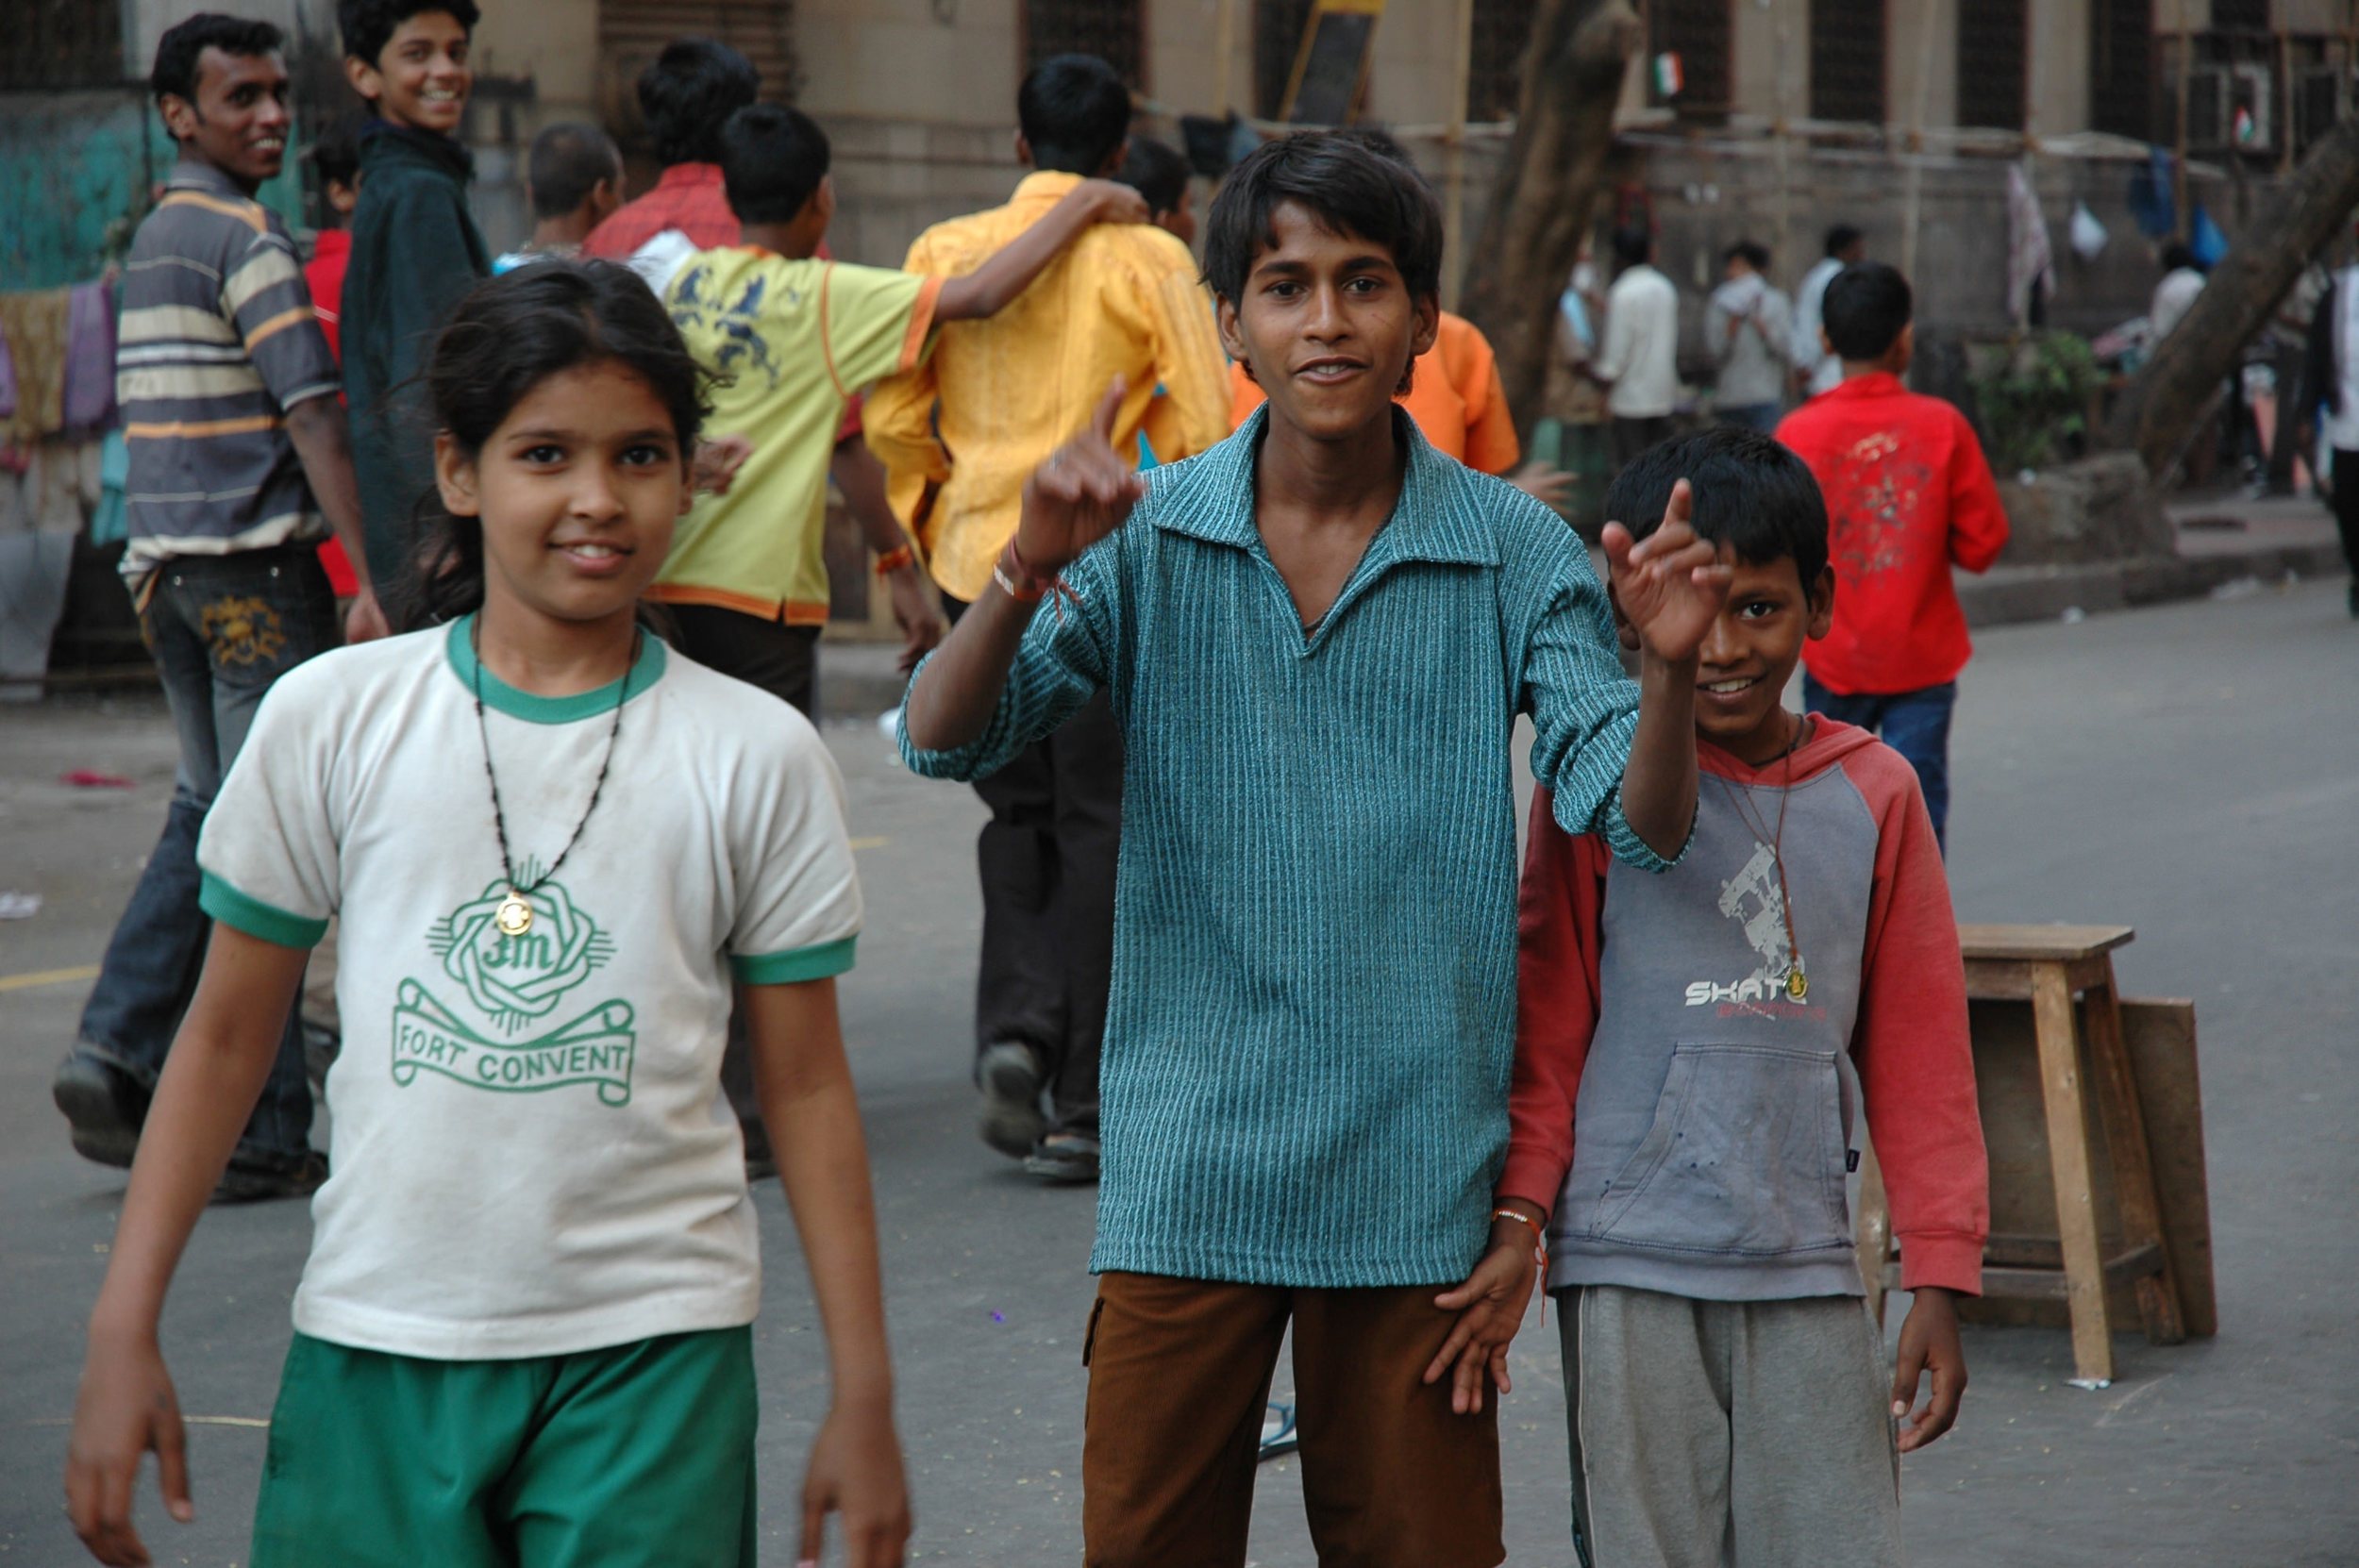 Millions of Indian kids like these are in urgent need of mentors to take an interest in their often neglected lives. Photo by Catie Sdrawde